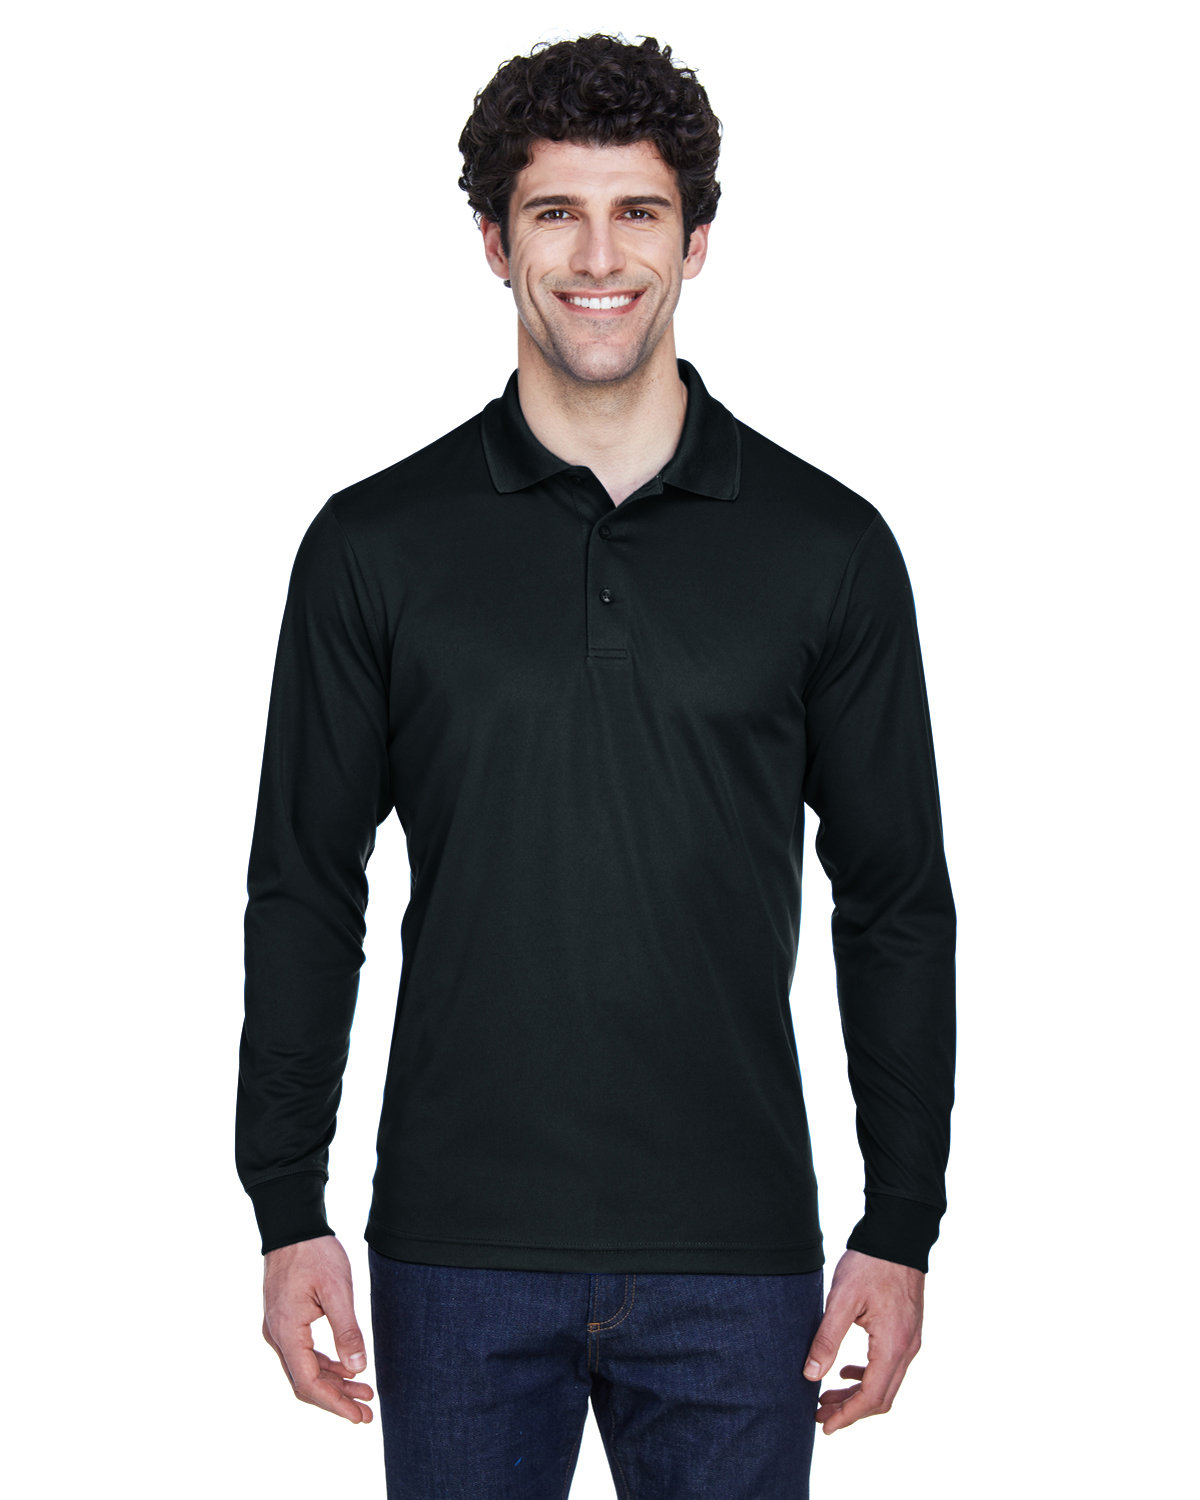 Core 365 Men's Tall Pinnacle Performance Long-Sleeve Piqué Polo BLACK